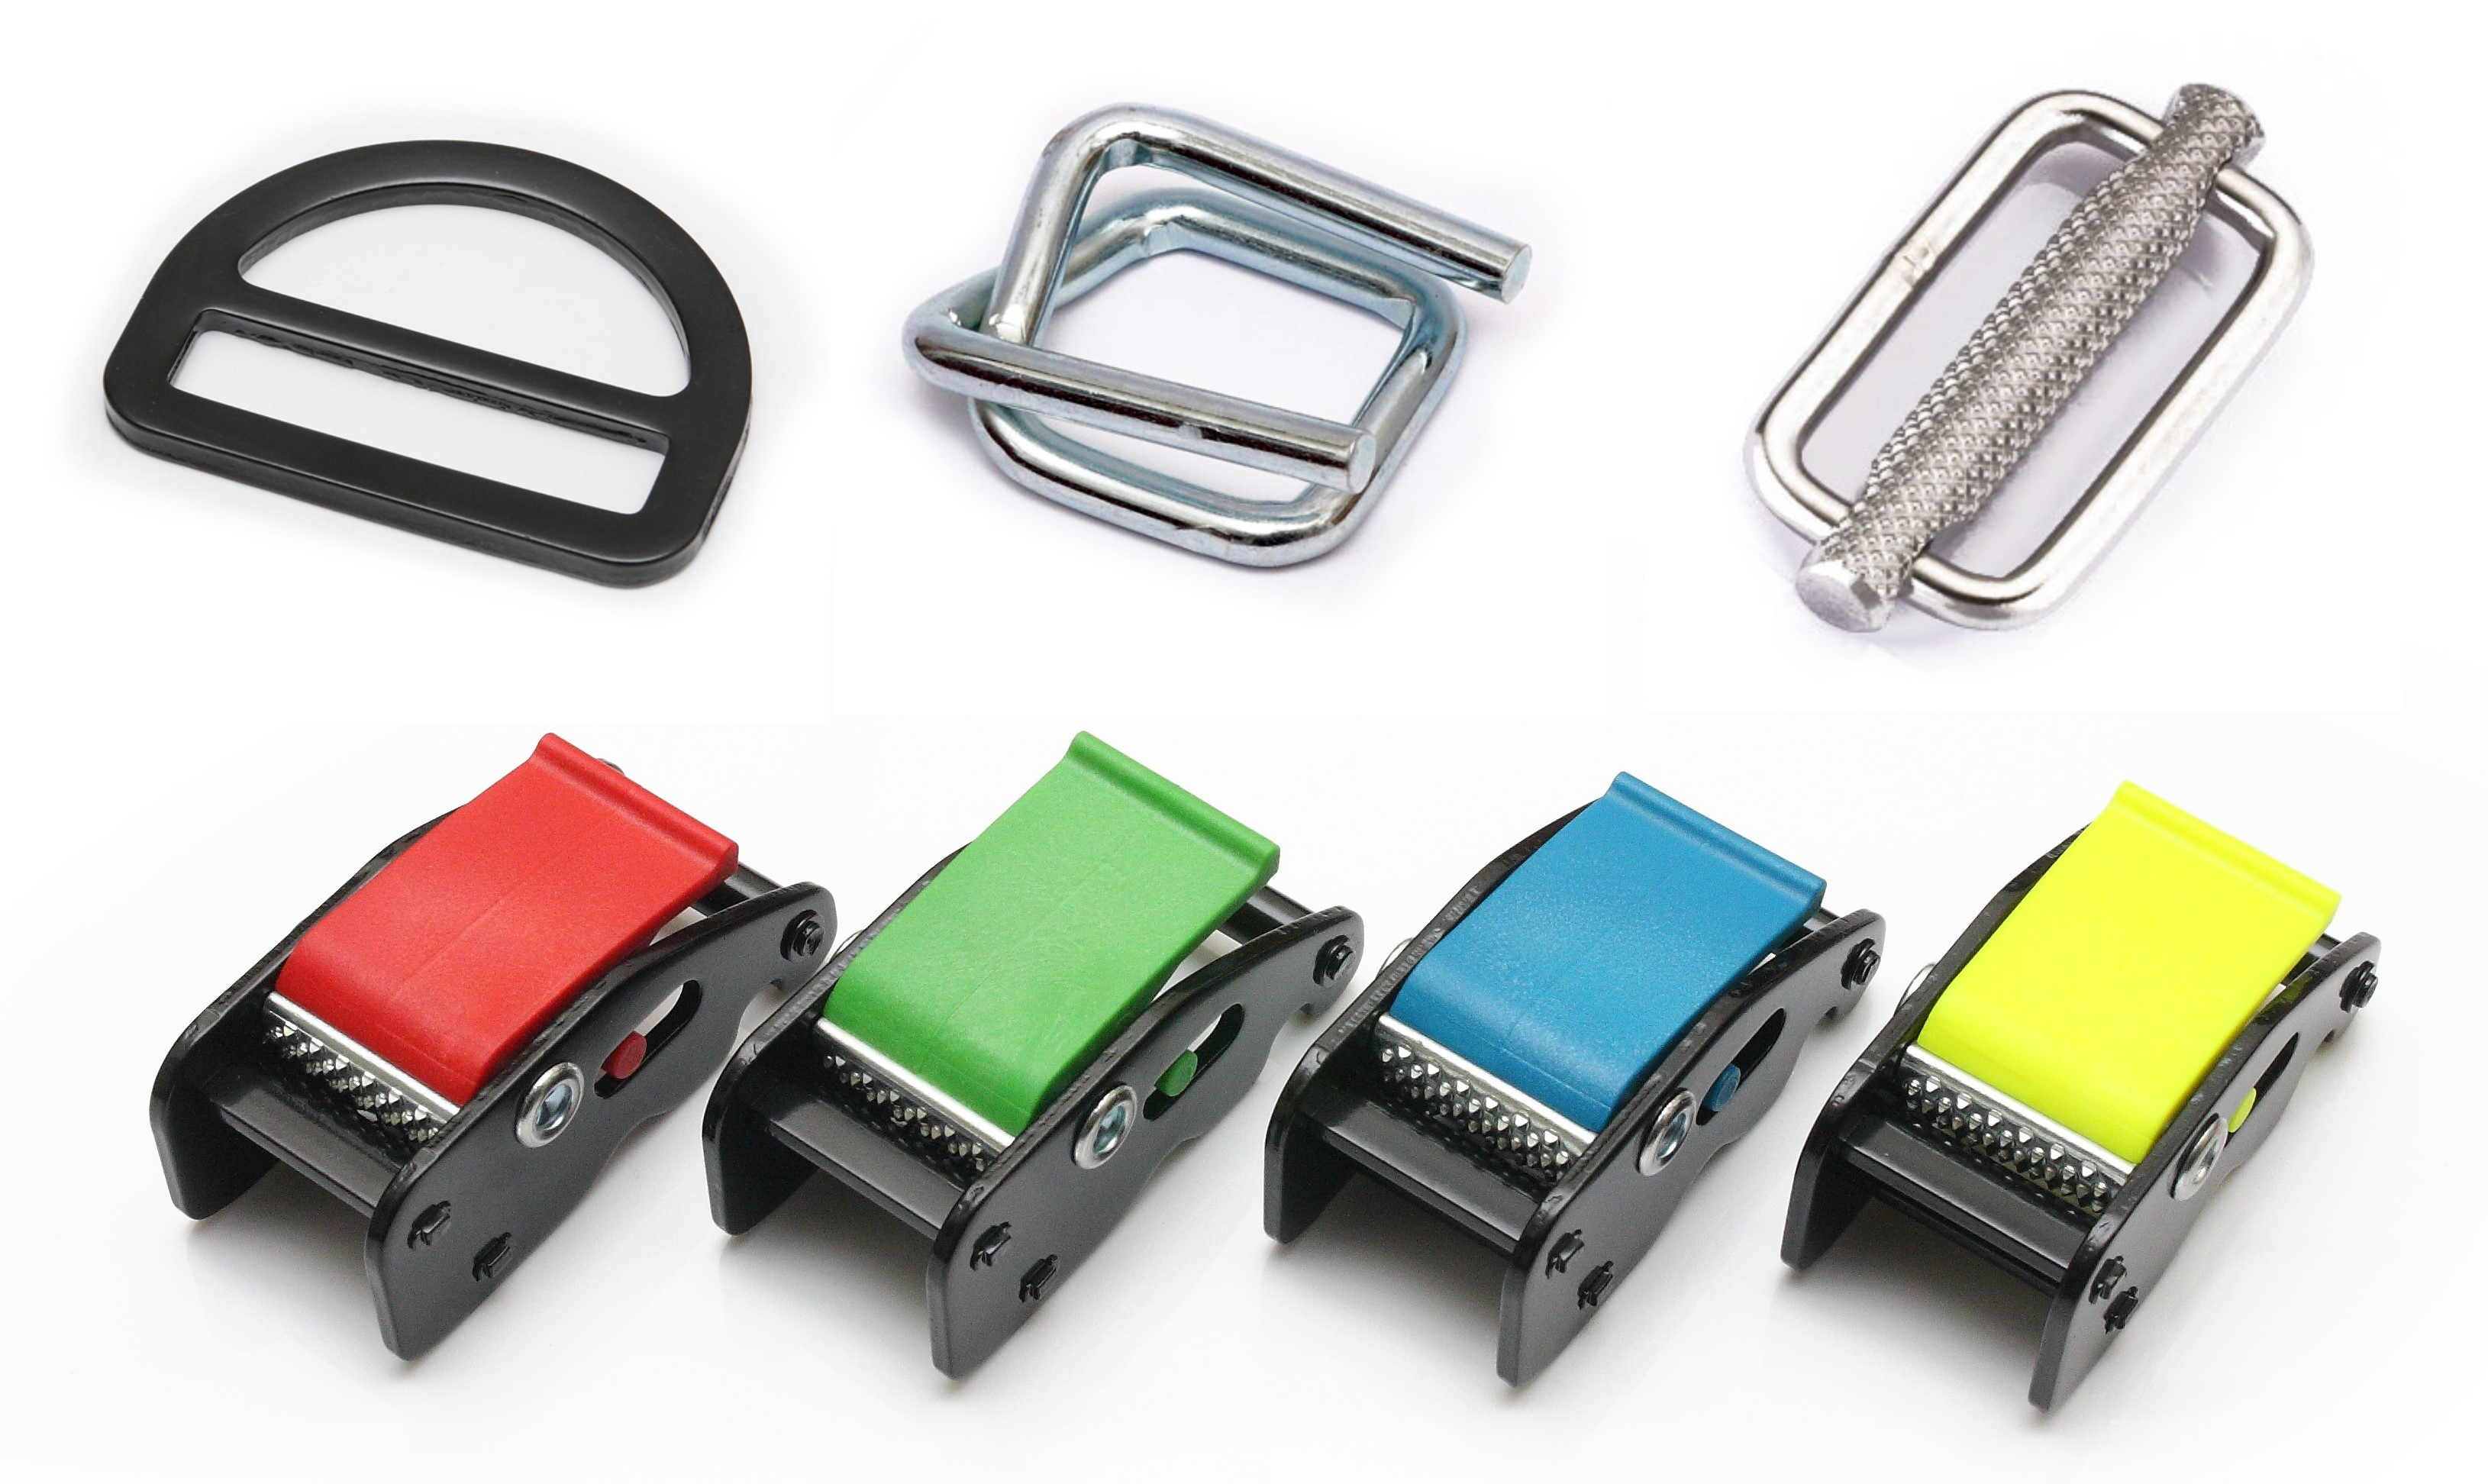 Automobile Buckle for Auto Exterior Accessories made by Win Chance Metal Co., LTD. 鈞成金屬股份有限公司 - MatchSupplier.com